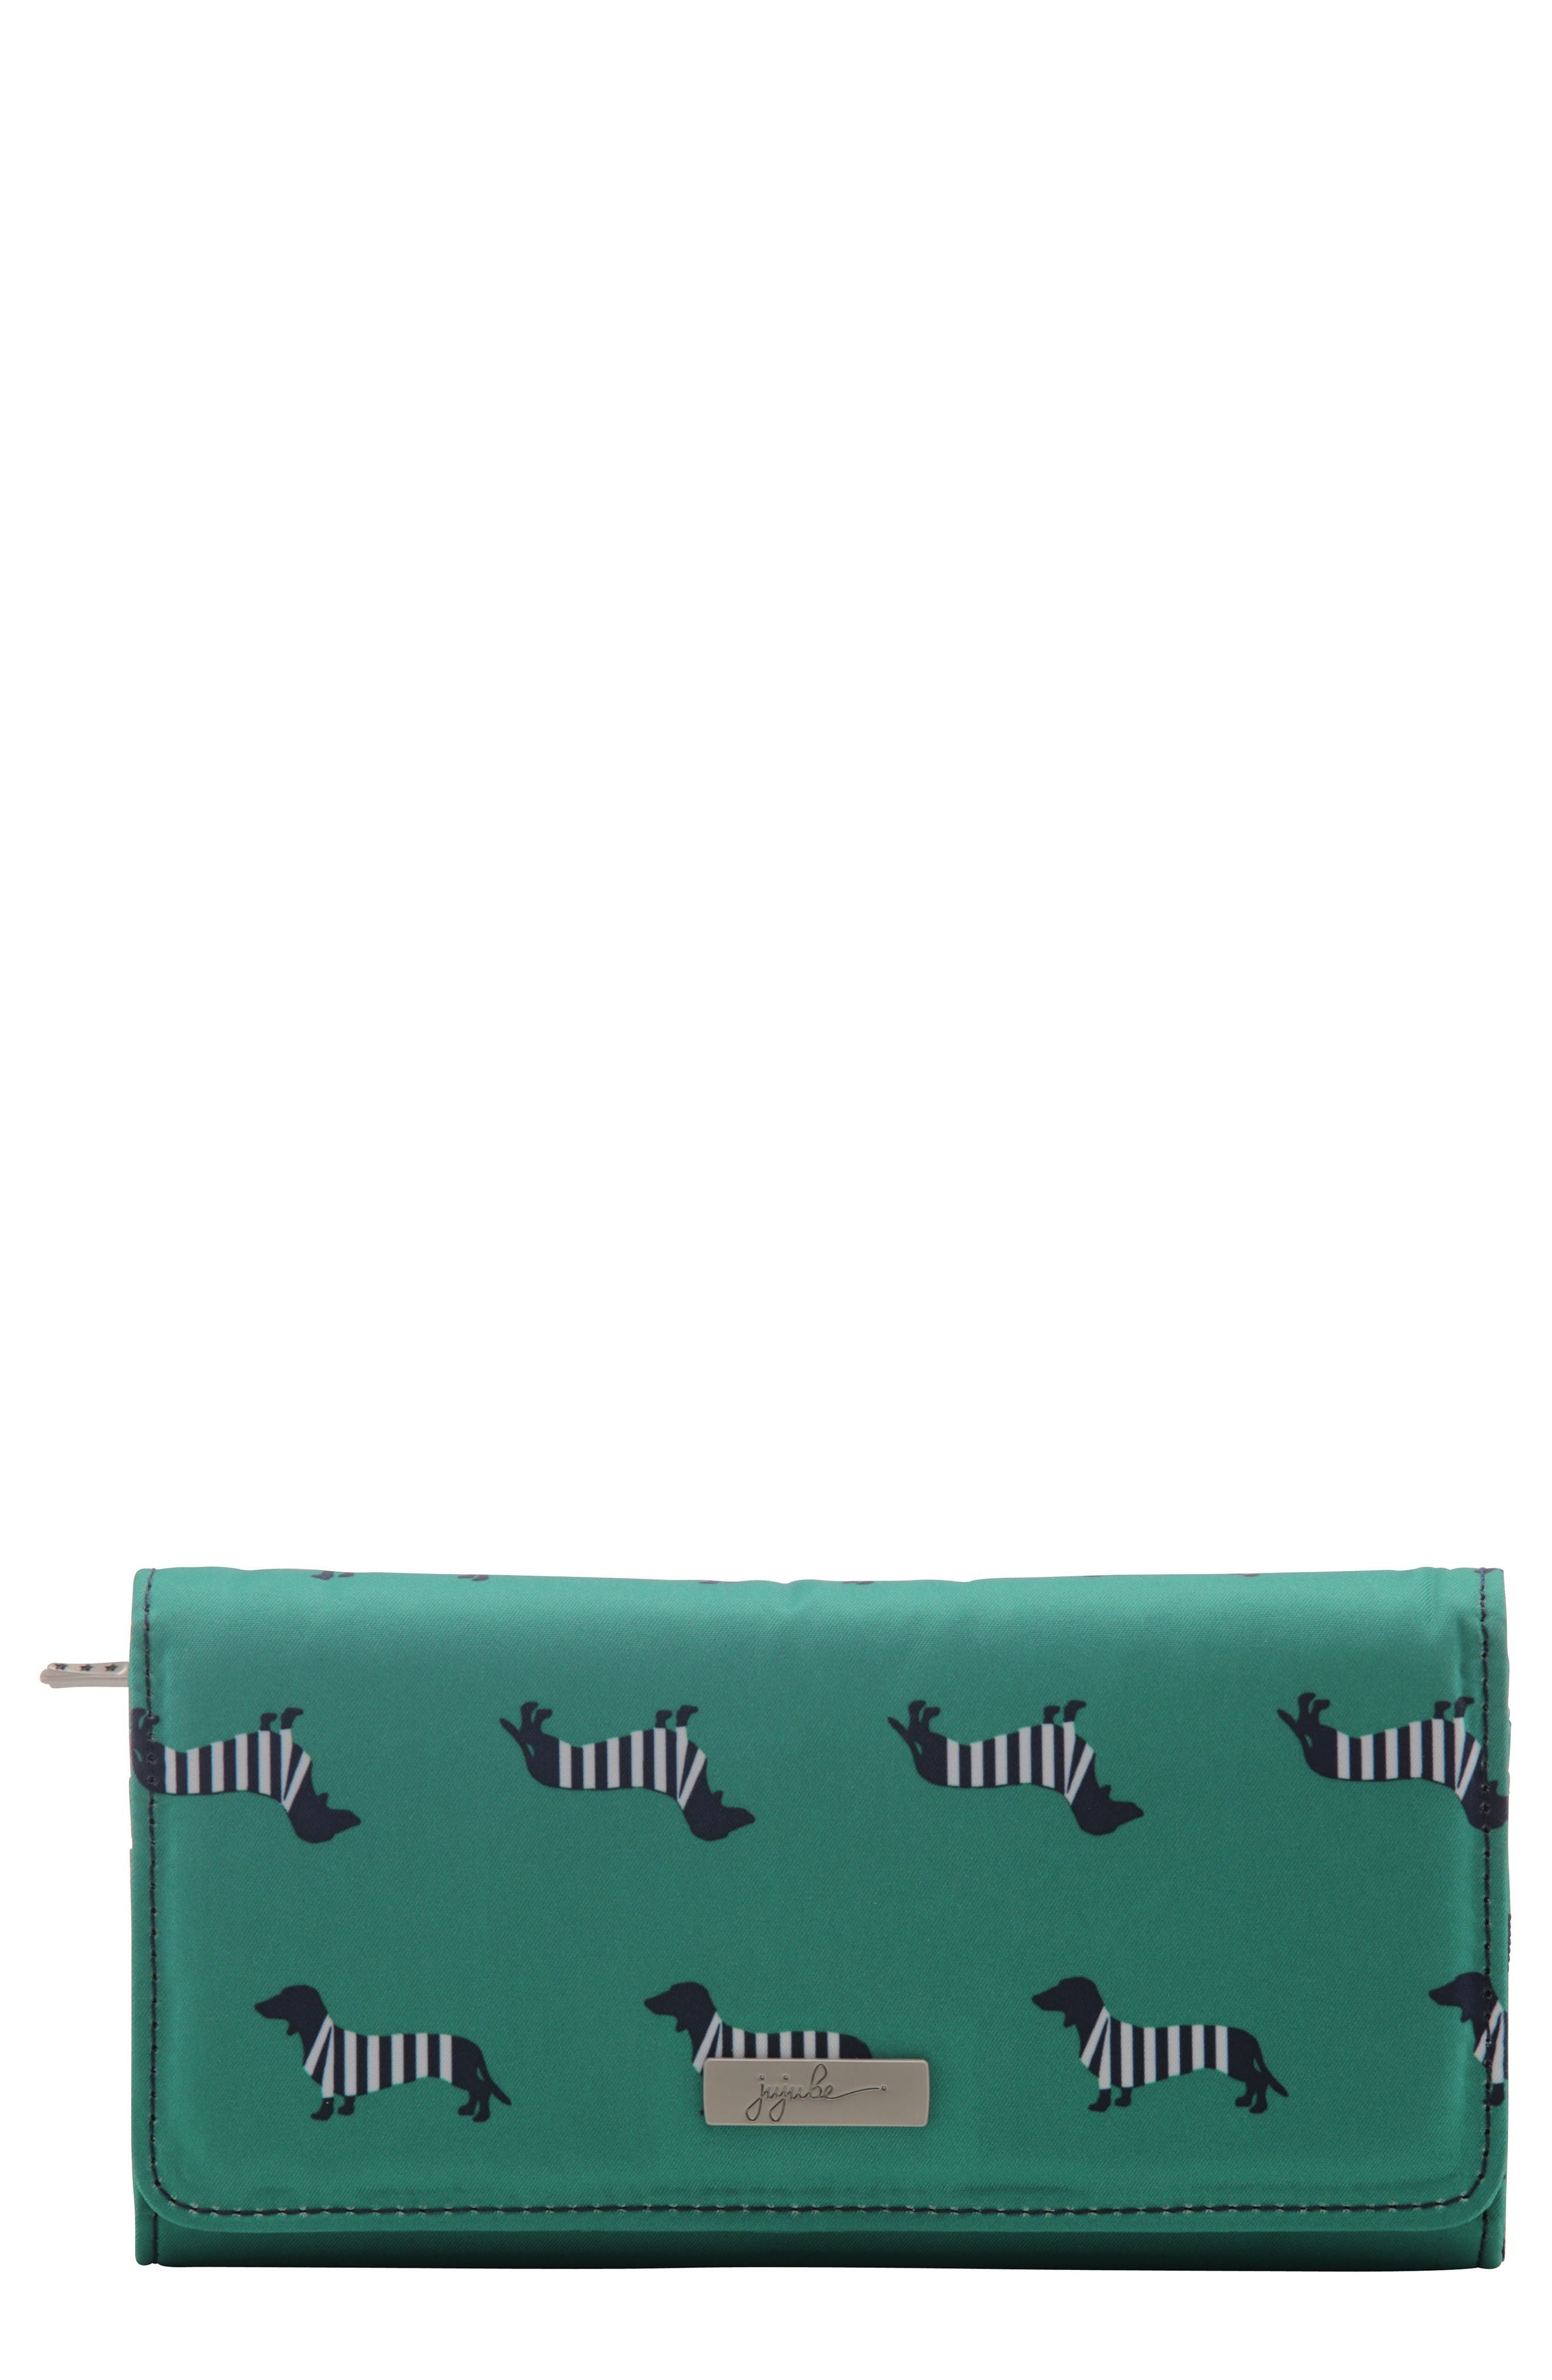 Be Rich - Coastal Collection Trifold Clutch Wallet,                         Main,                         color, Coney Island